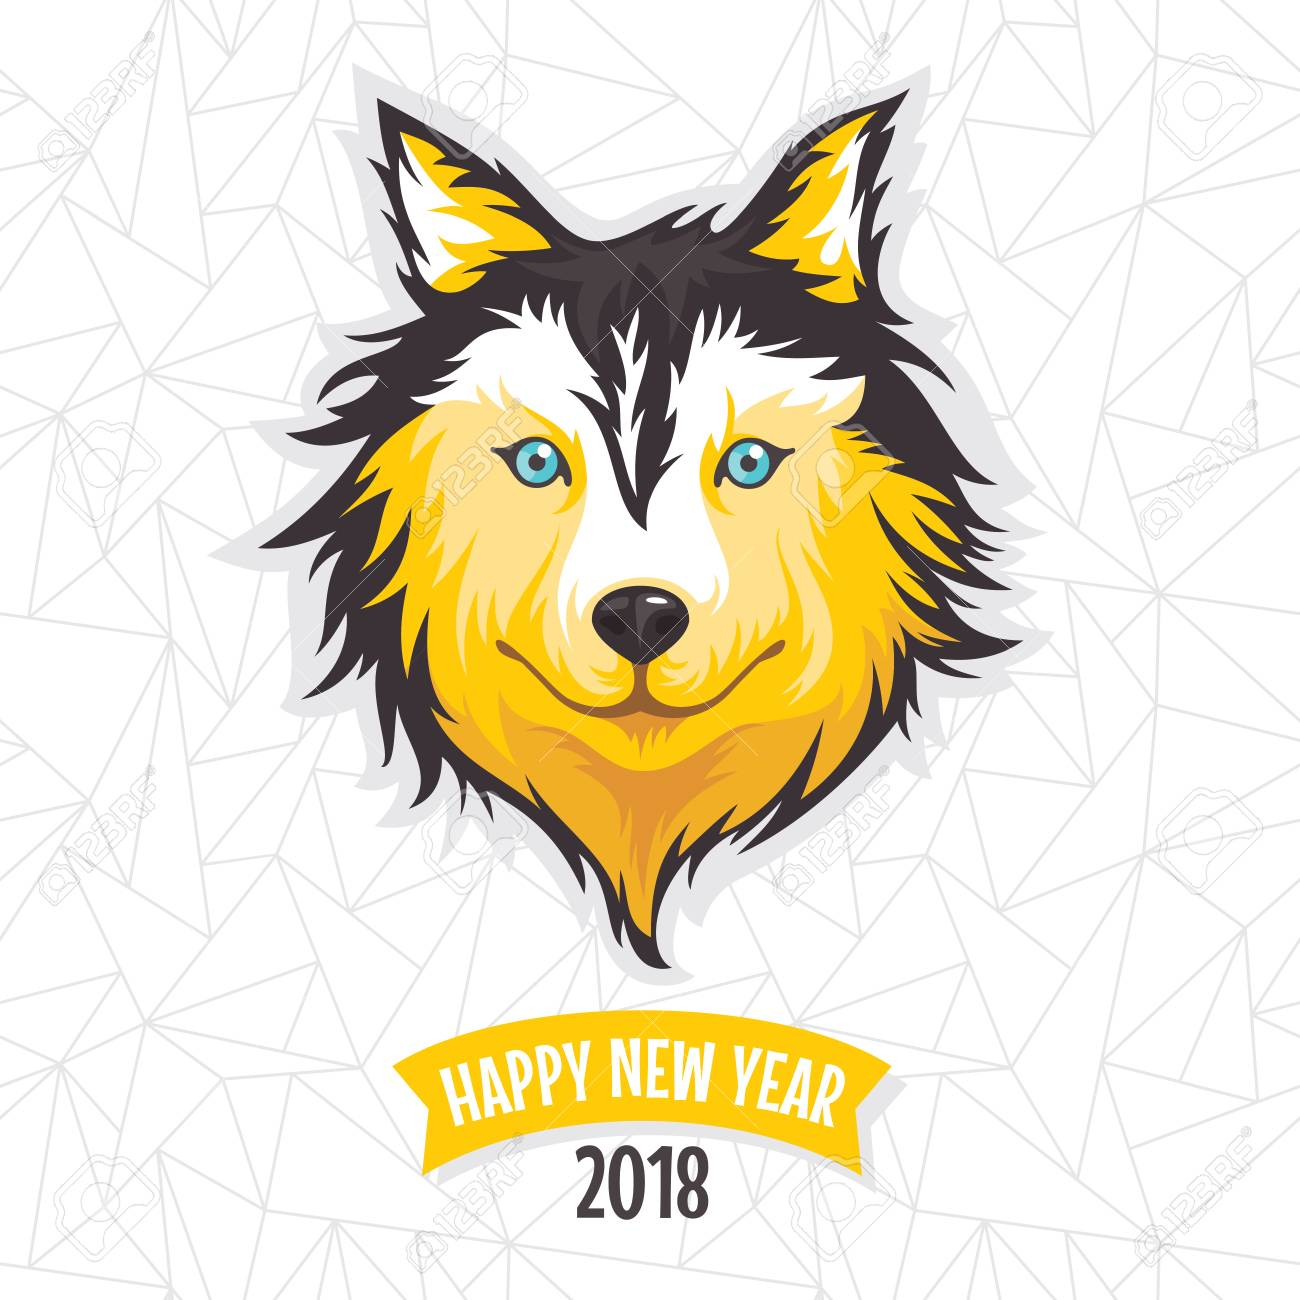 2018 new year greeting card with stylized dog vector illustration 2018 new year greeting card with stylized dog vector illustration stock vector 80634425 m4hsunfo